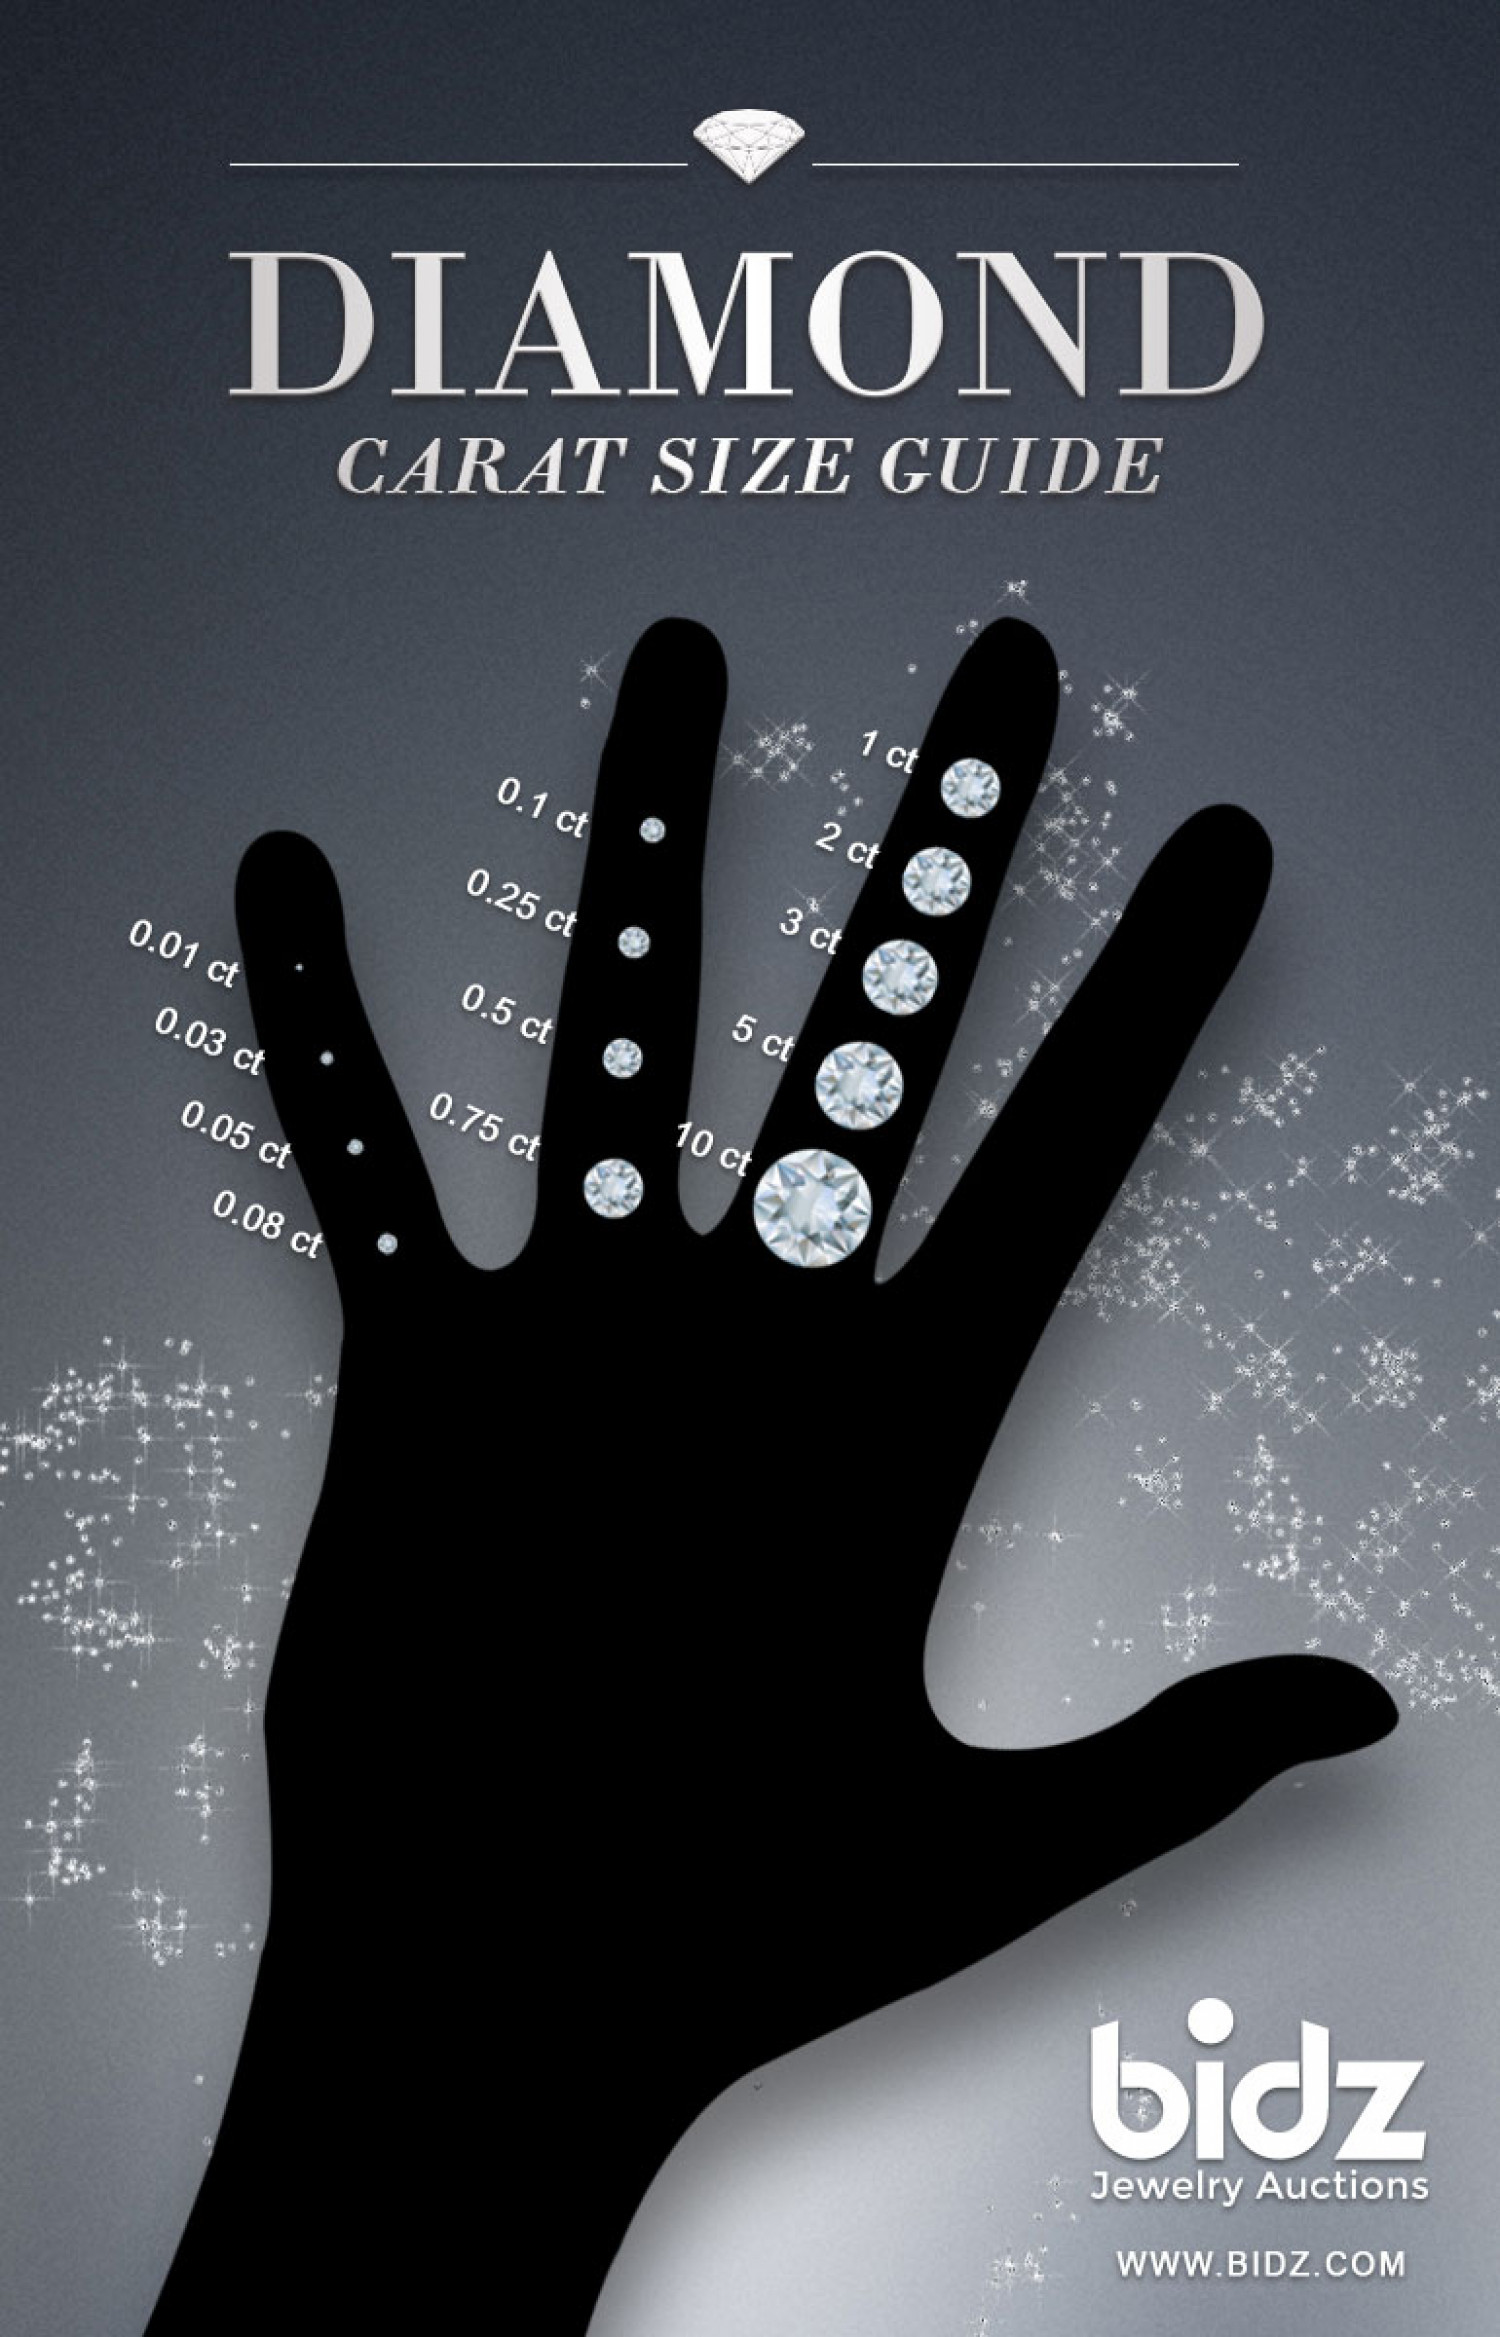 Diamond Carat Size Guide Infographic